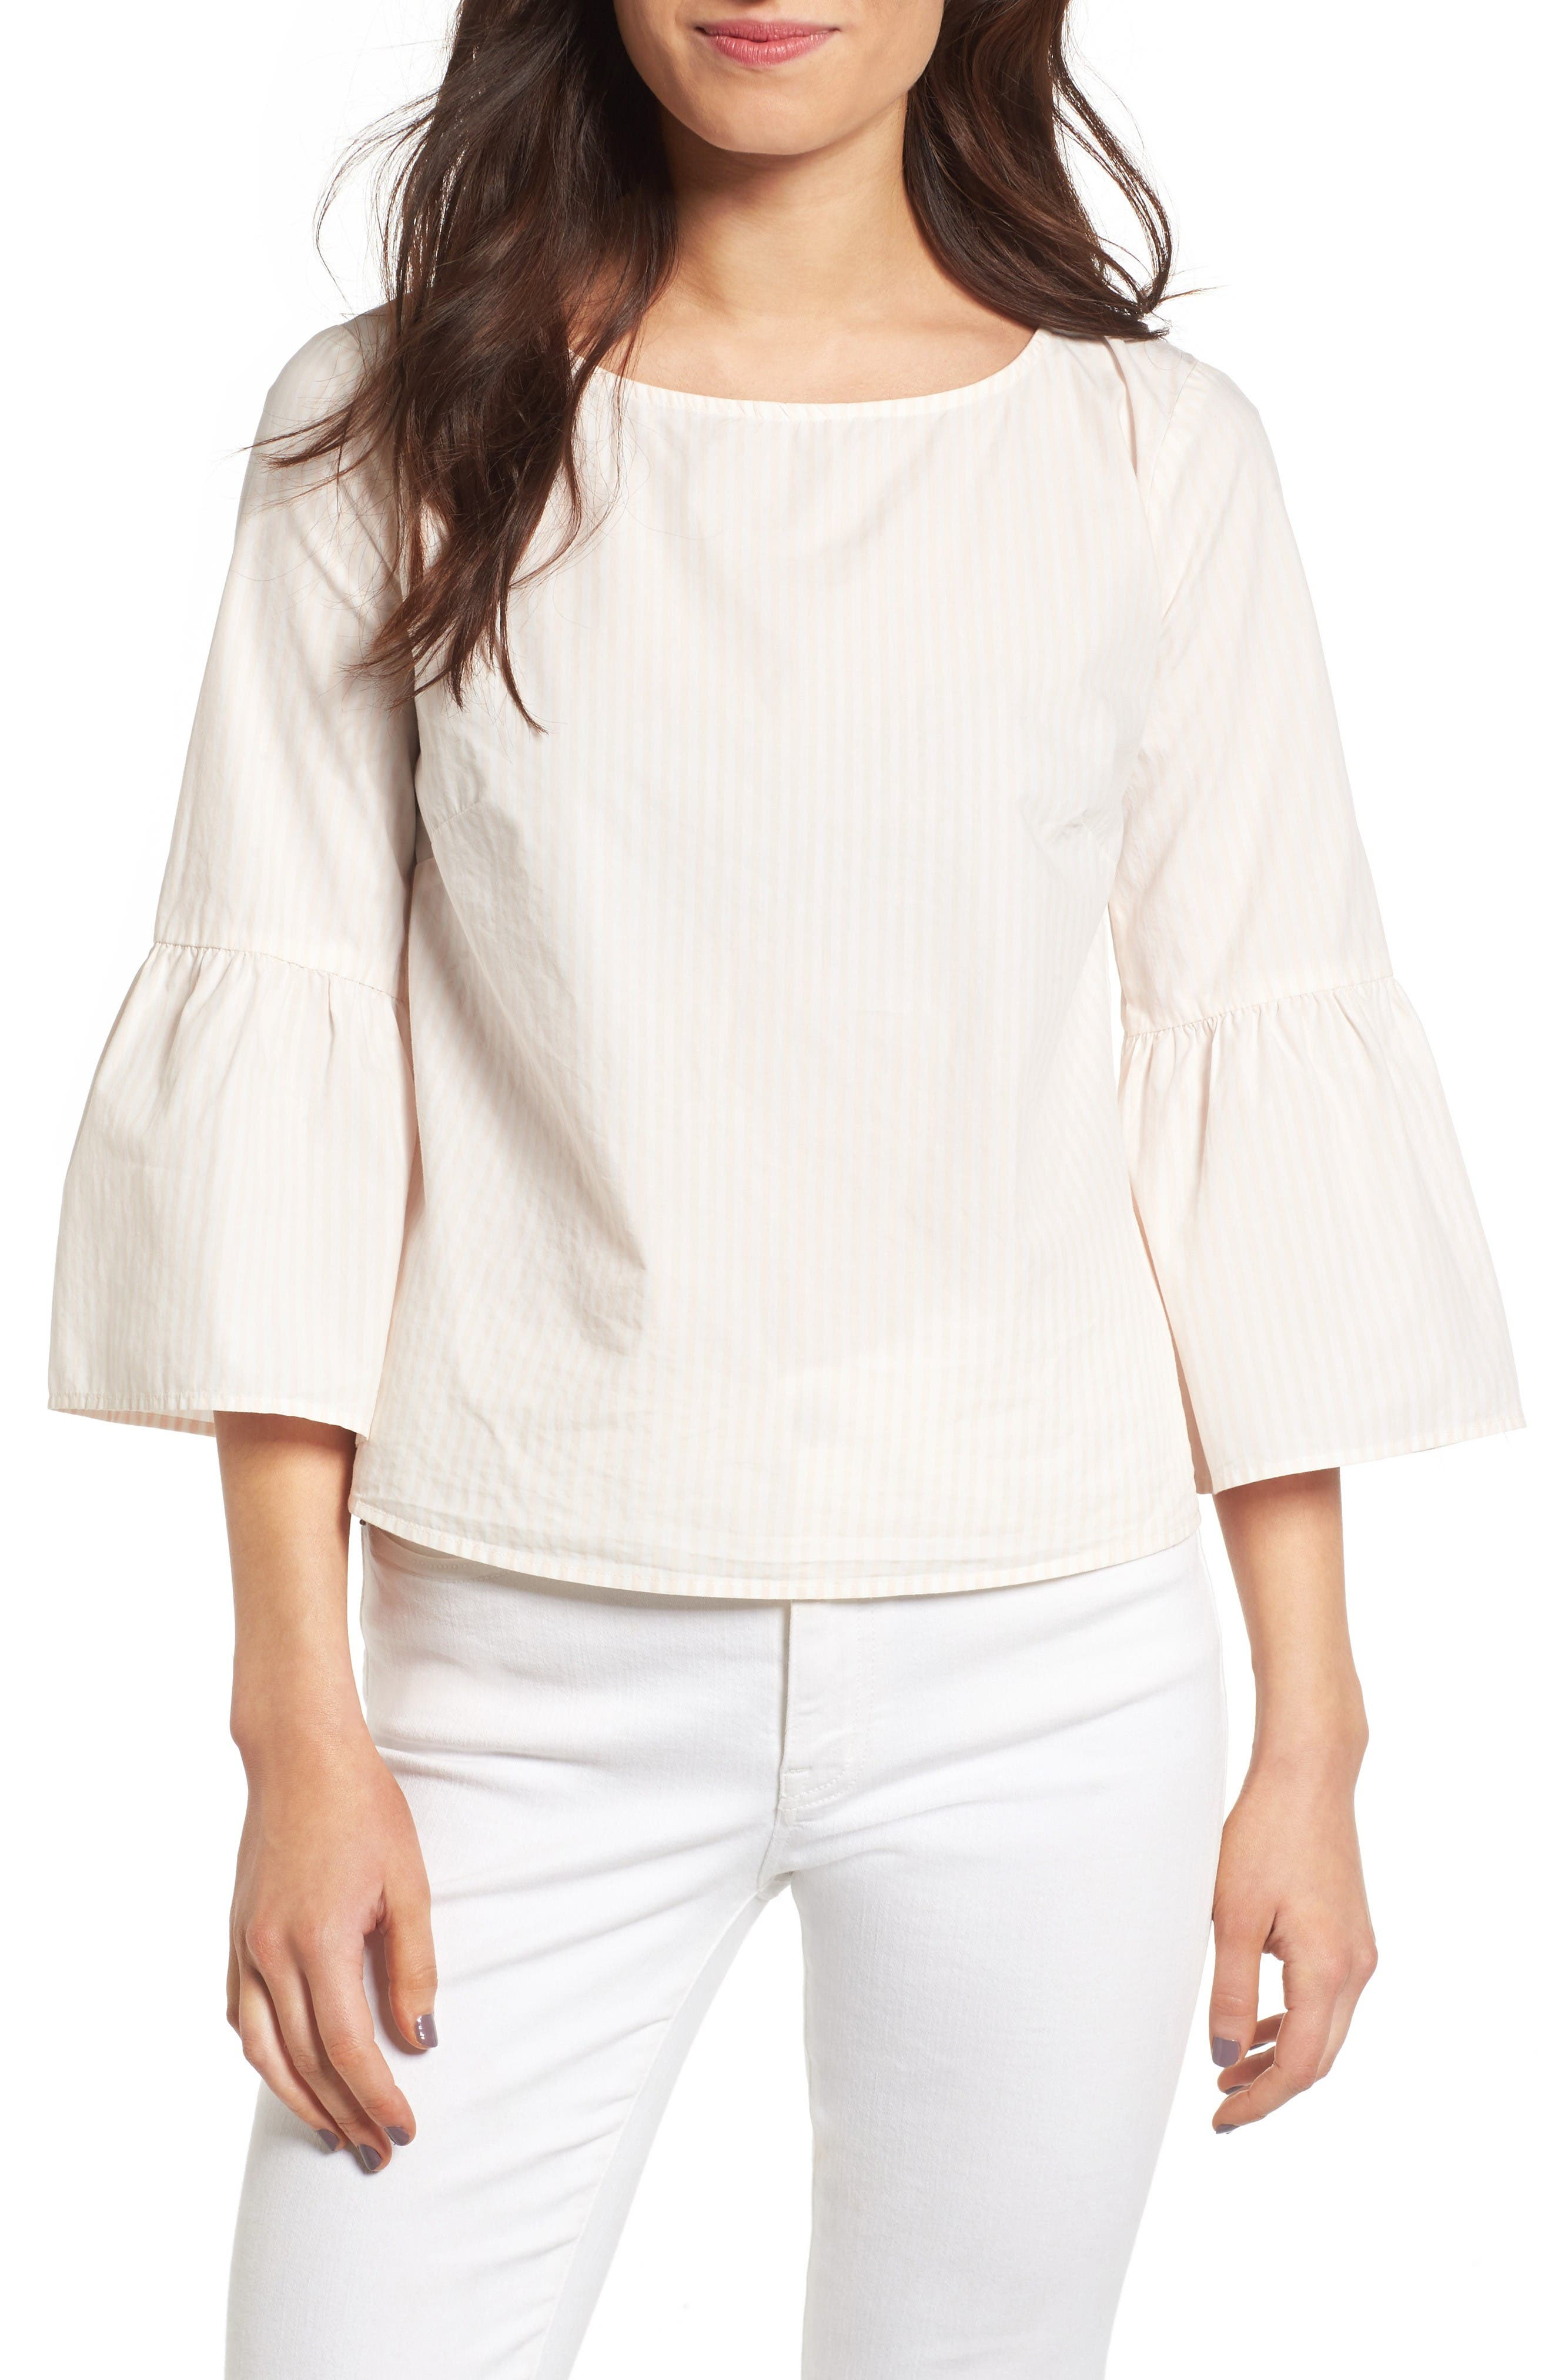 Main Image - Madewell Bell Sleeve Cotton Top